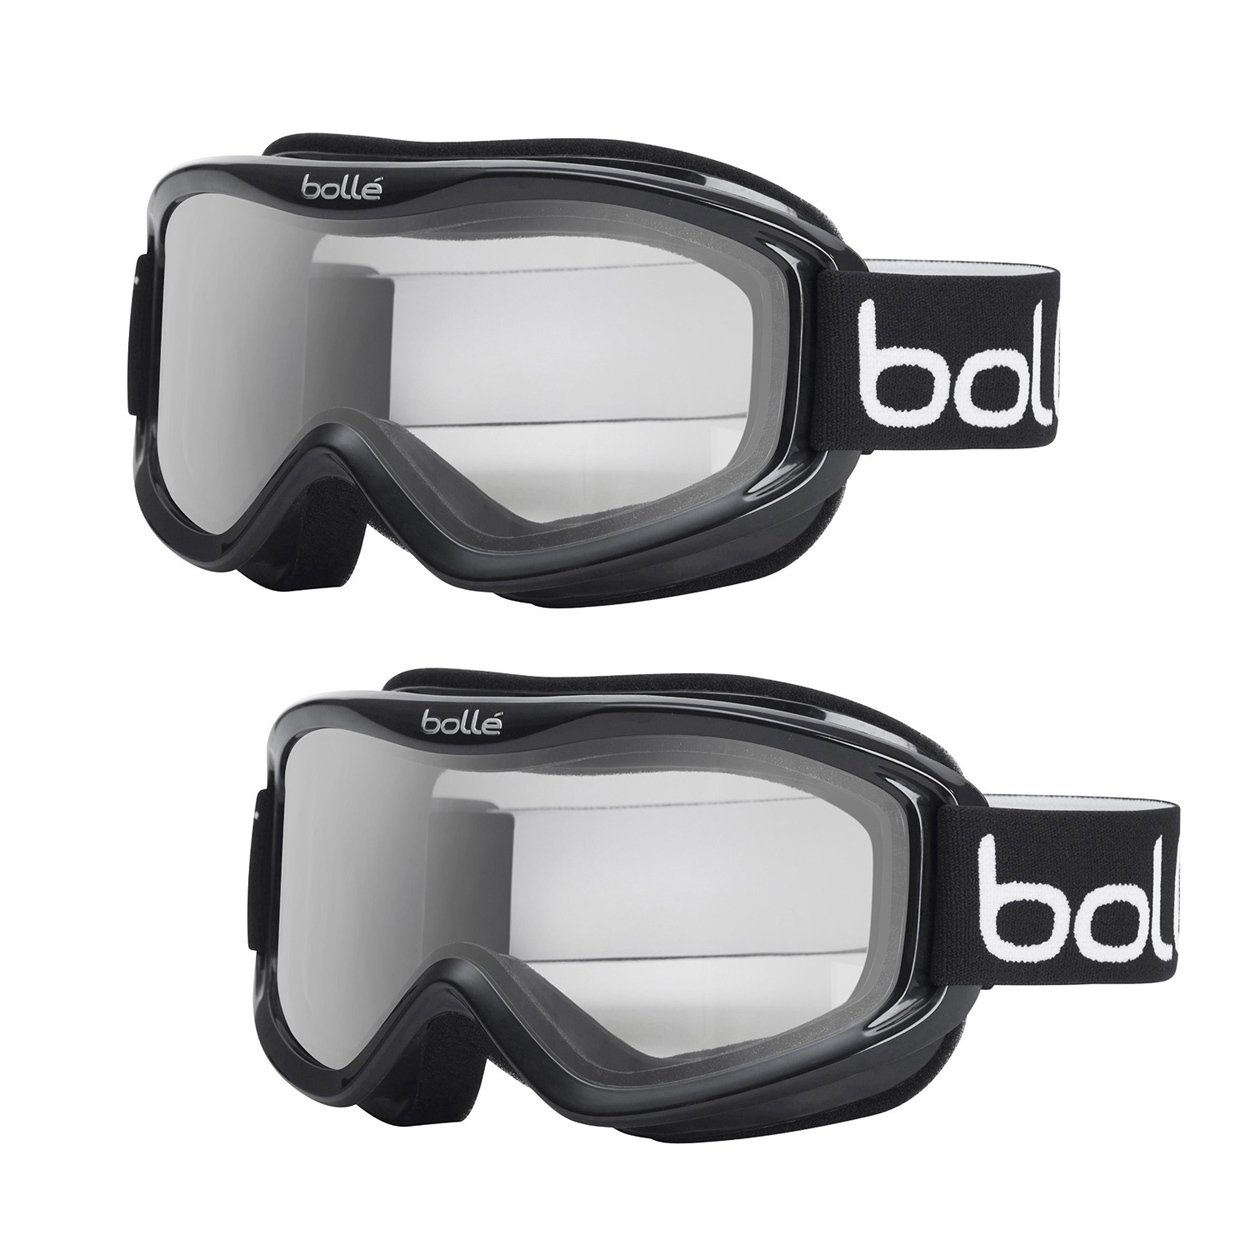 Bolle Anti Fog Goggles Medium 2 Pack